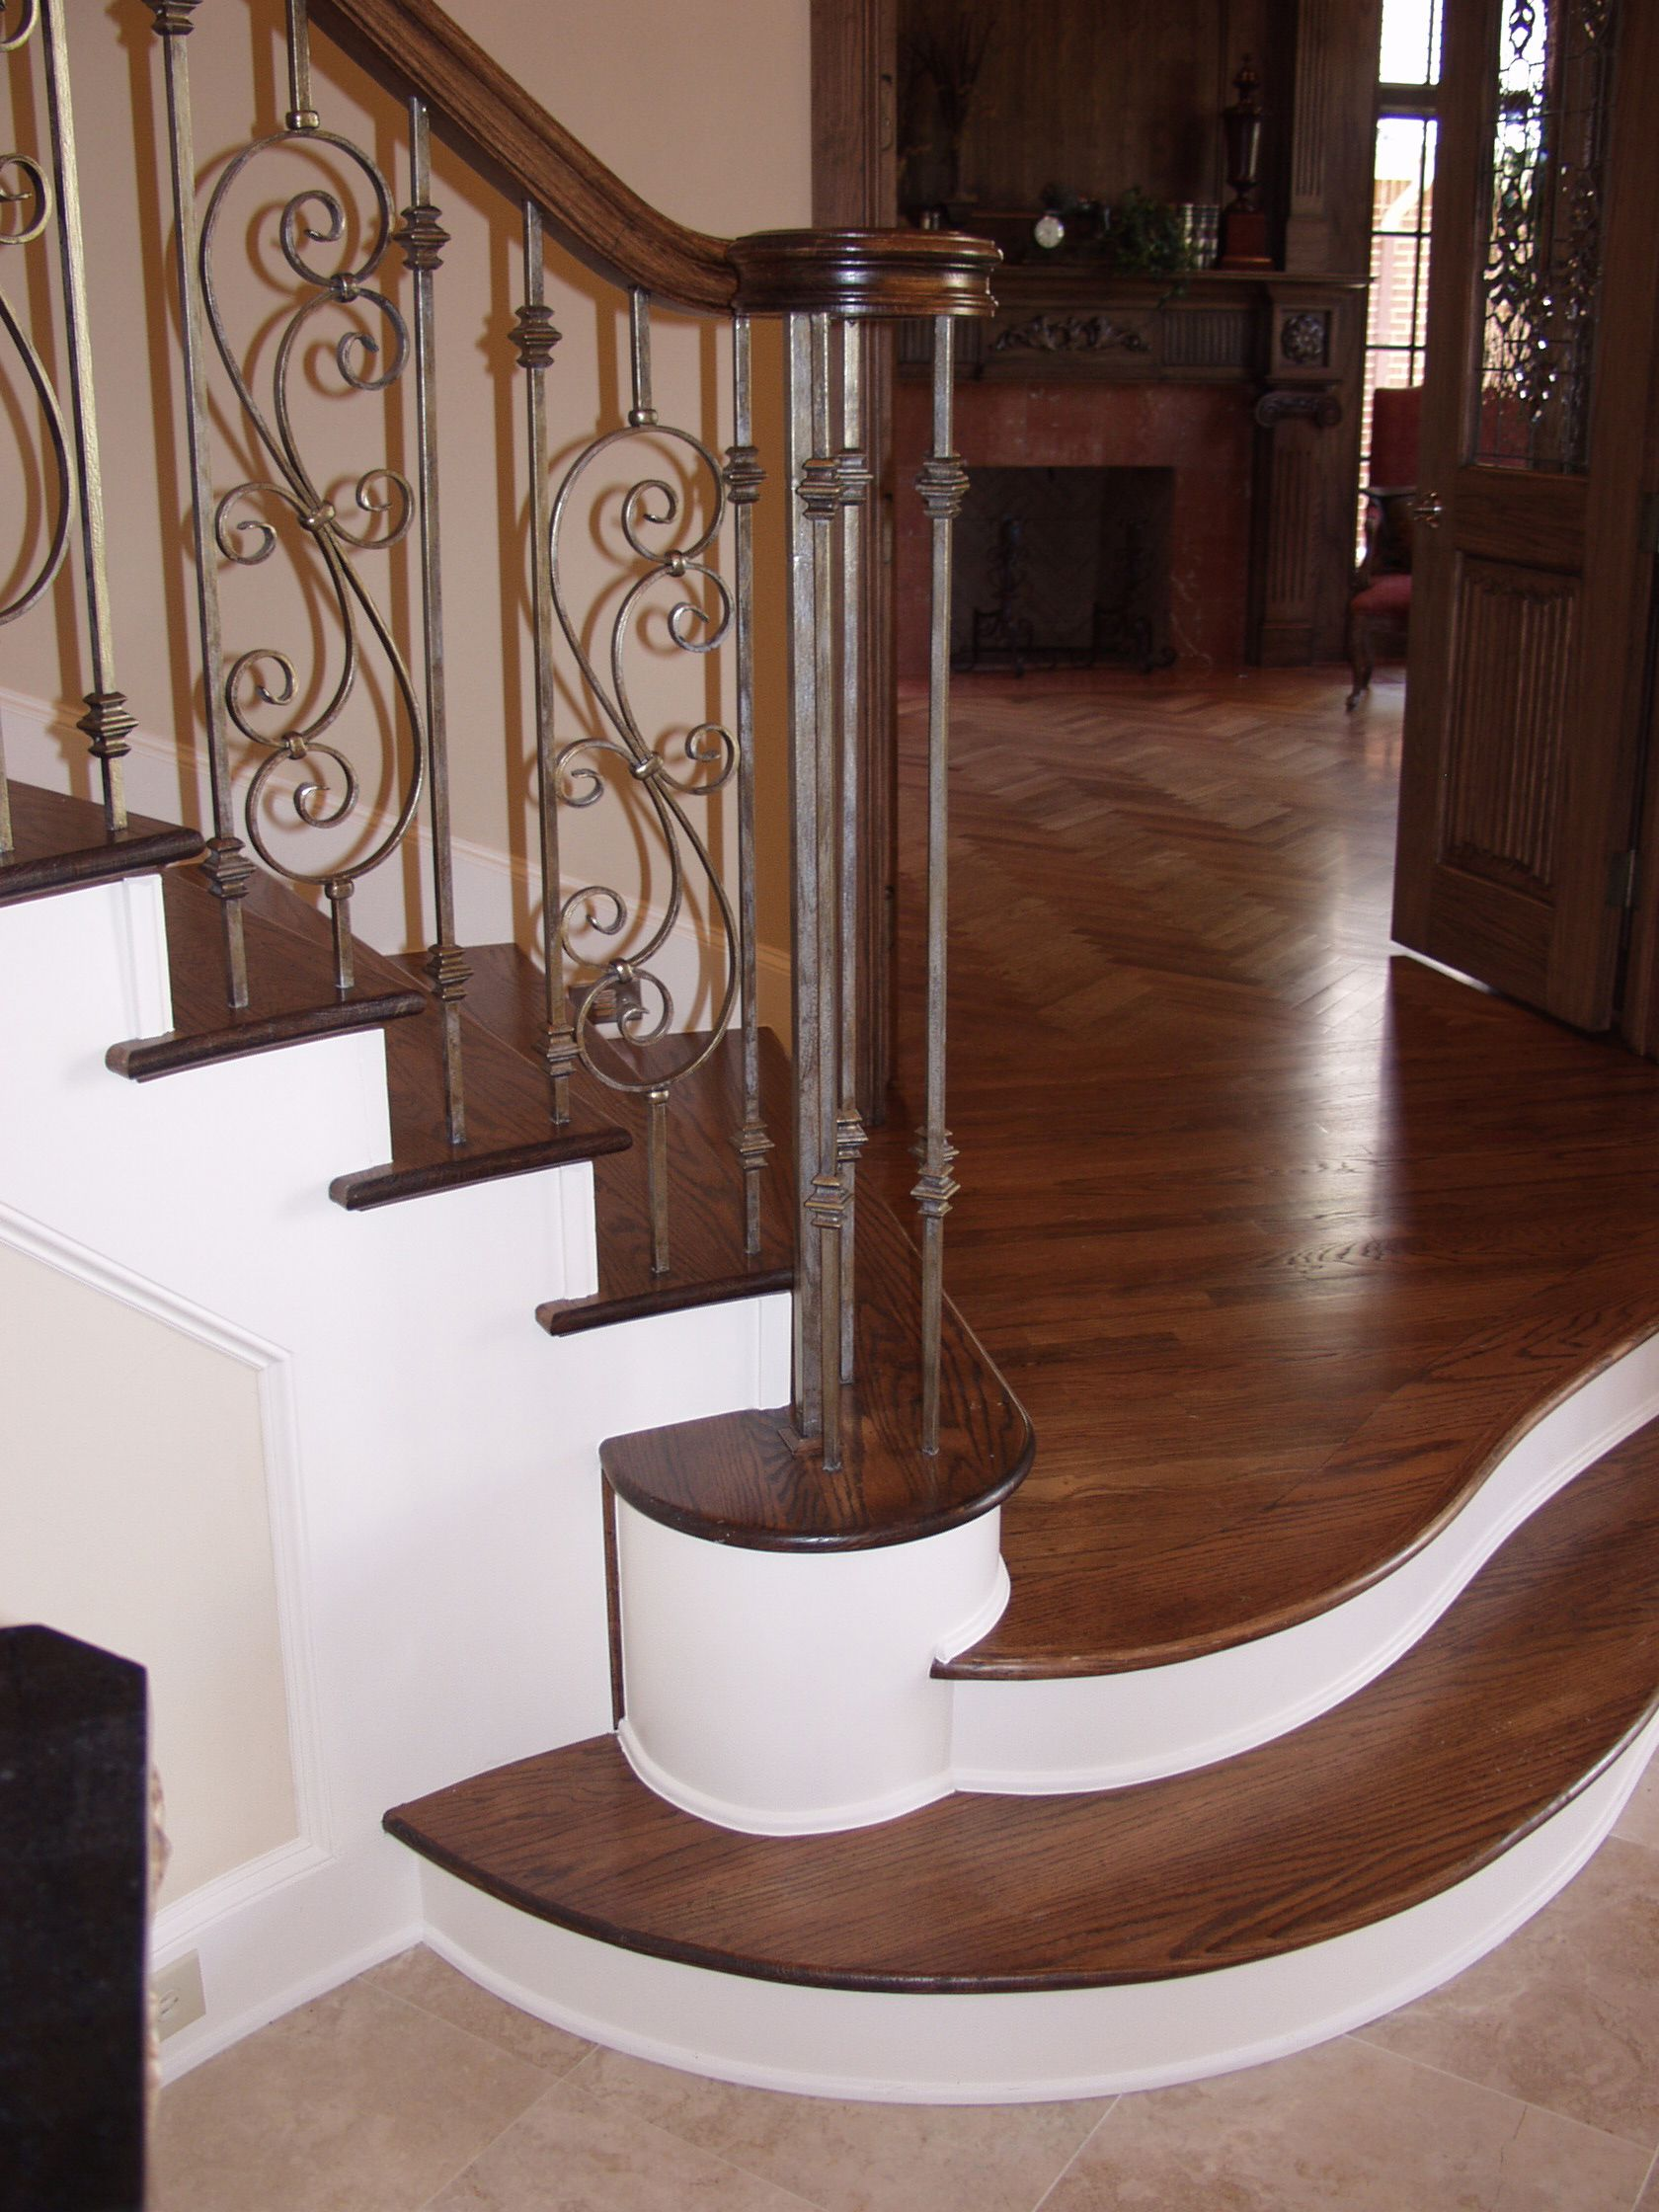 Oil Rubbed Bronze 16.1.35 Double Knuckle Solid Iron Baluster for Staircase Remodel